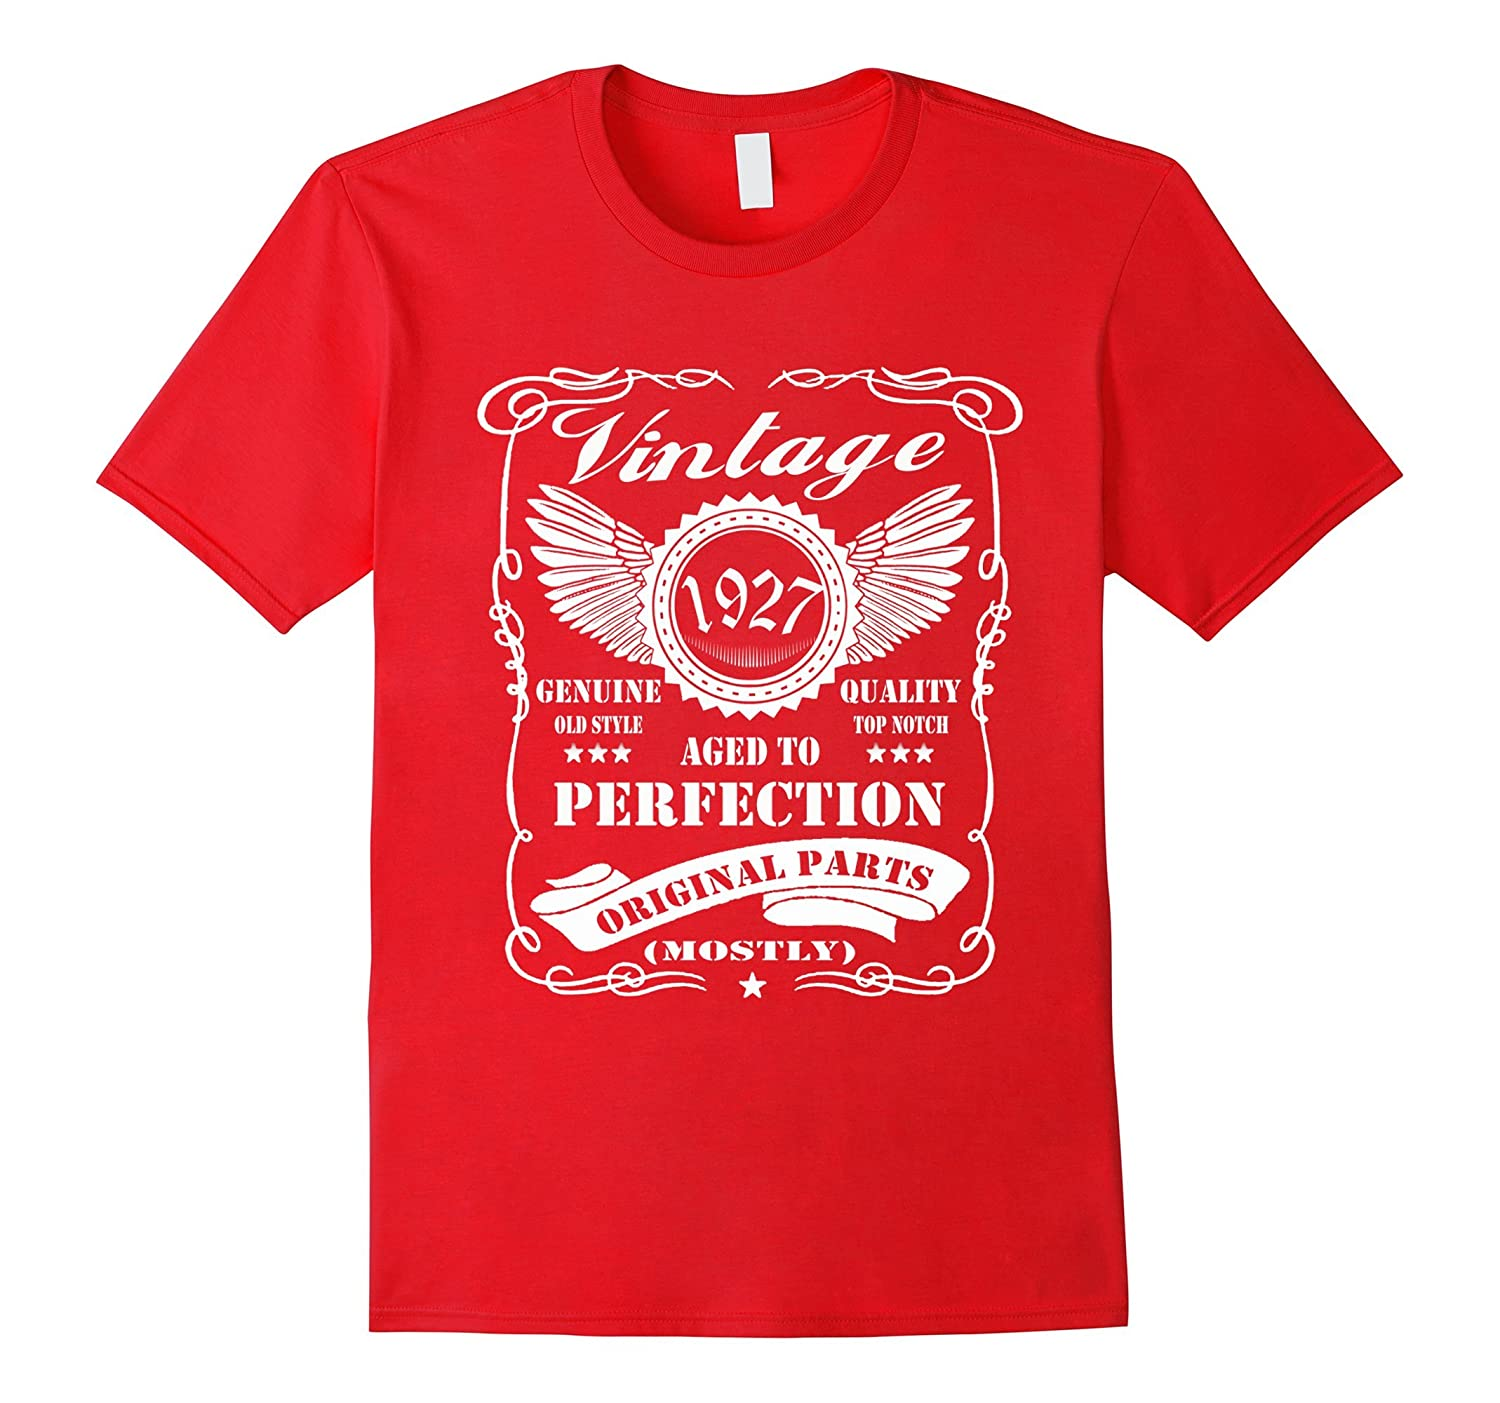 90th Birthday T Shirt Vintage Made In 1927 Gift Ideas Guys PL Polozatee